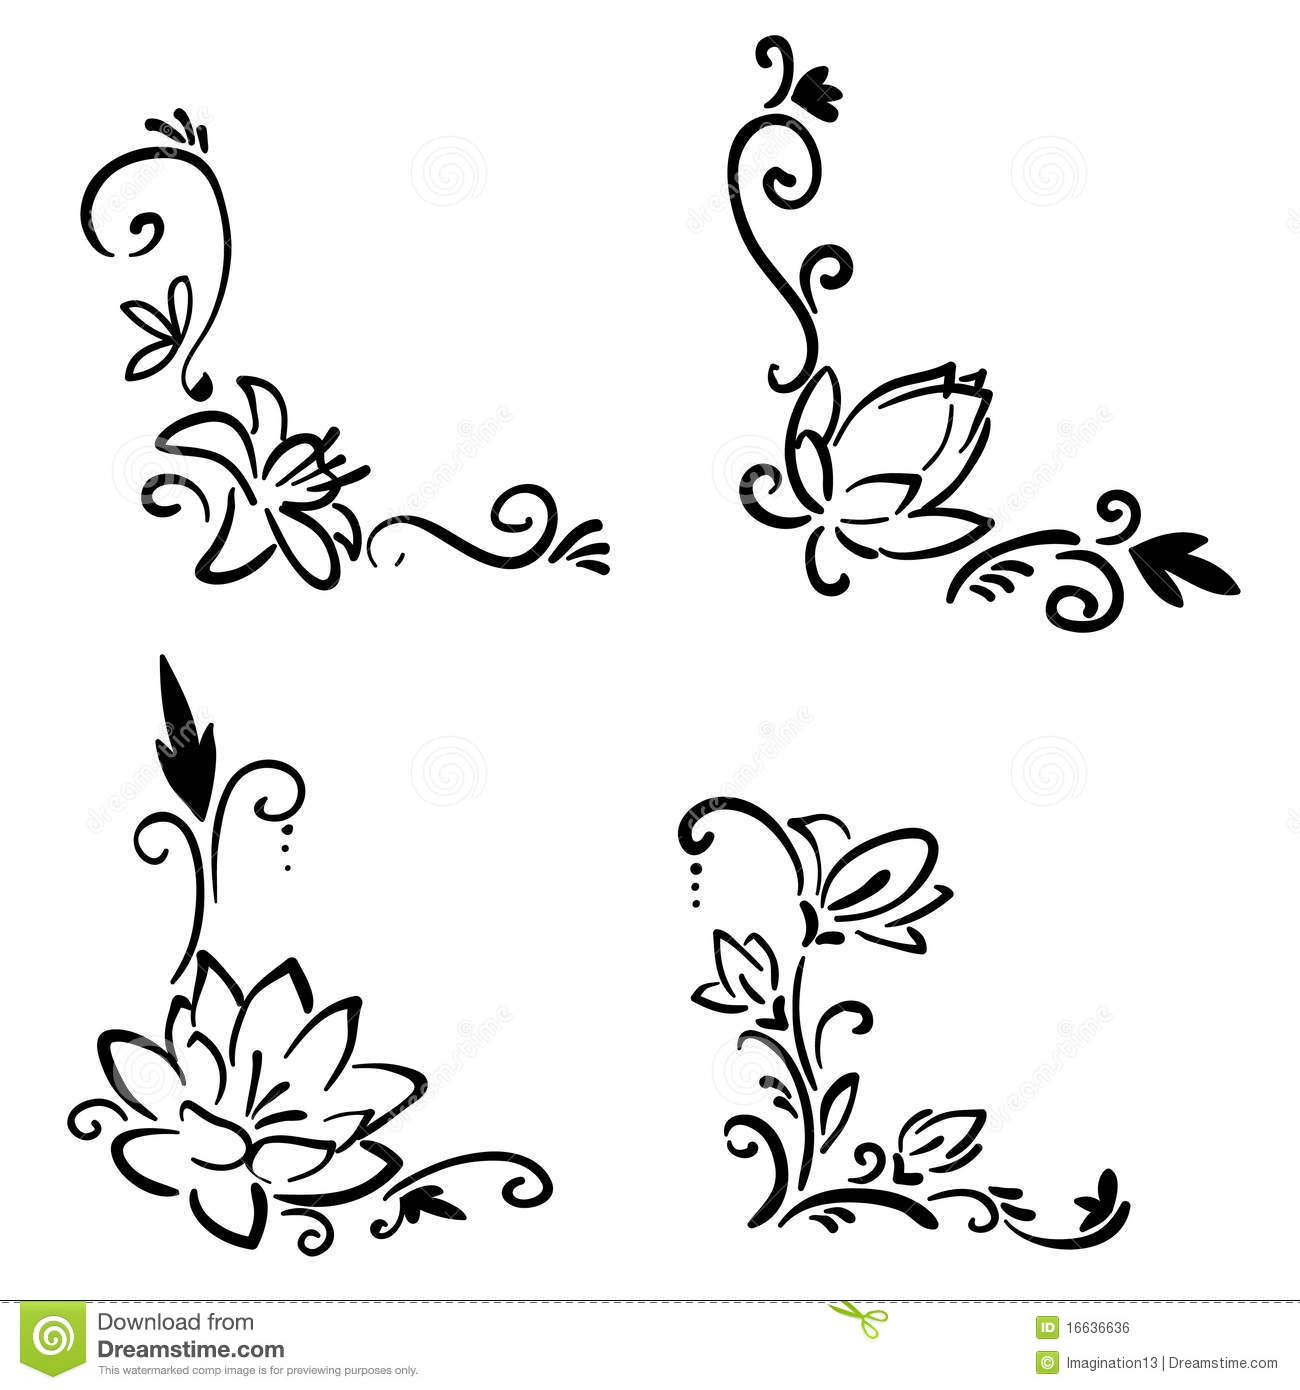 flower corner stock vector illustration of abstract 16636636 dreamstime com